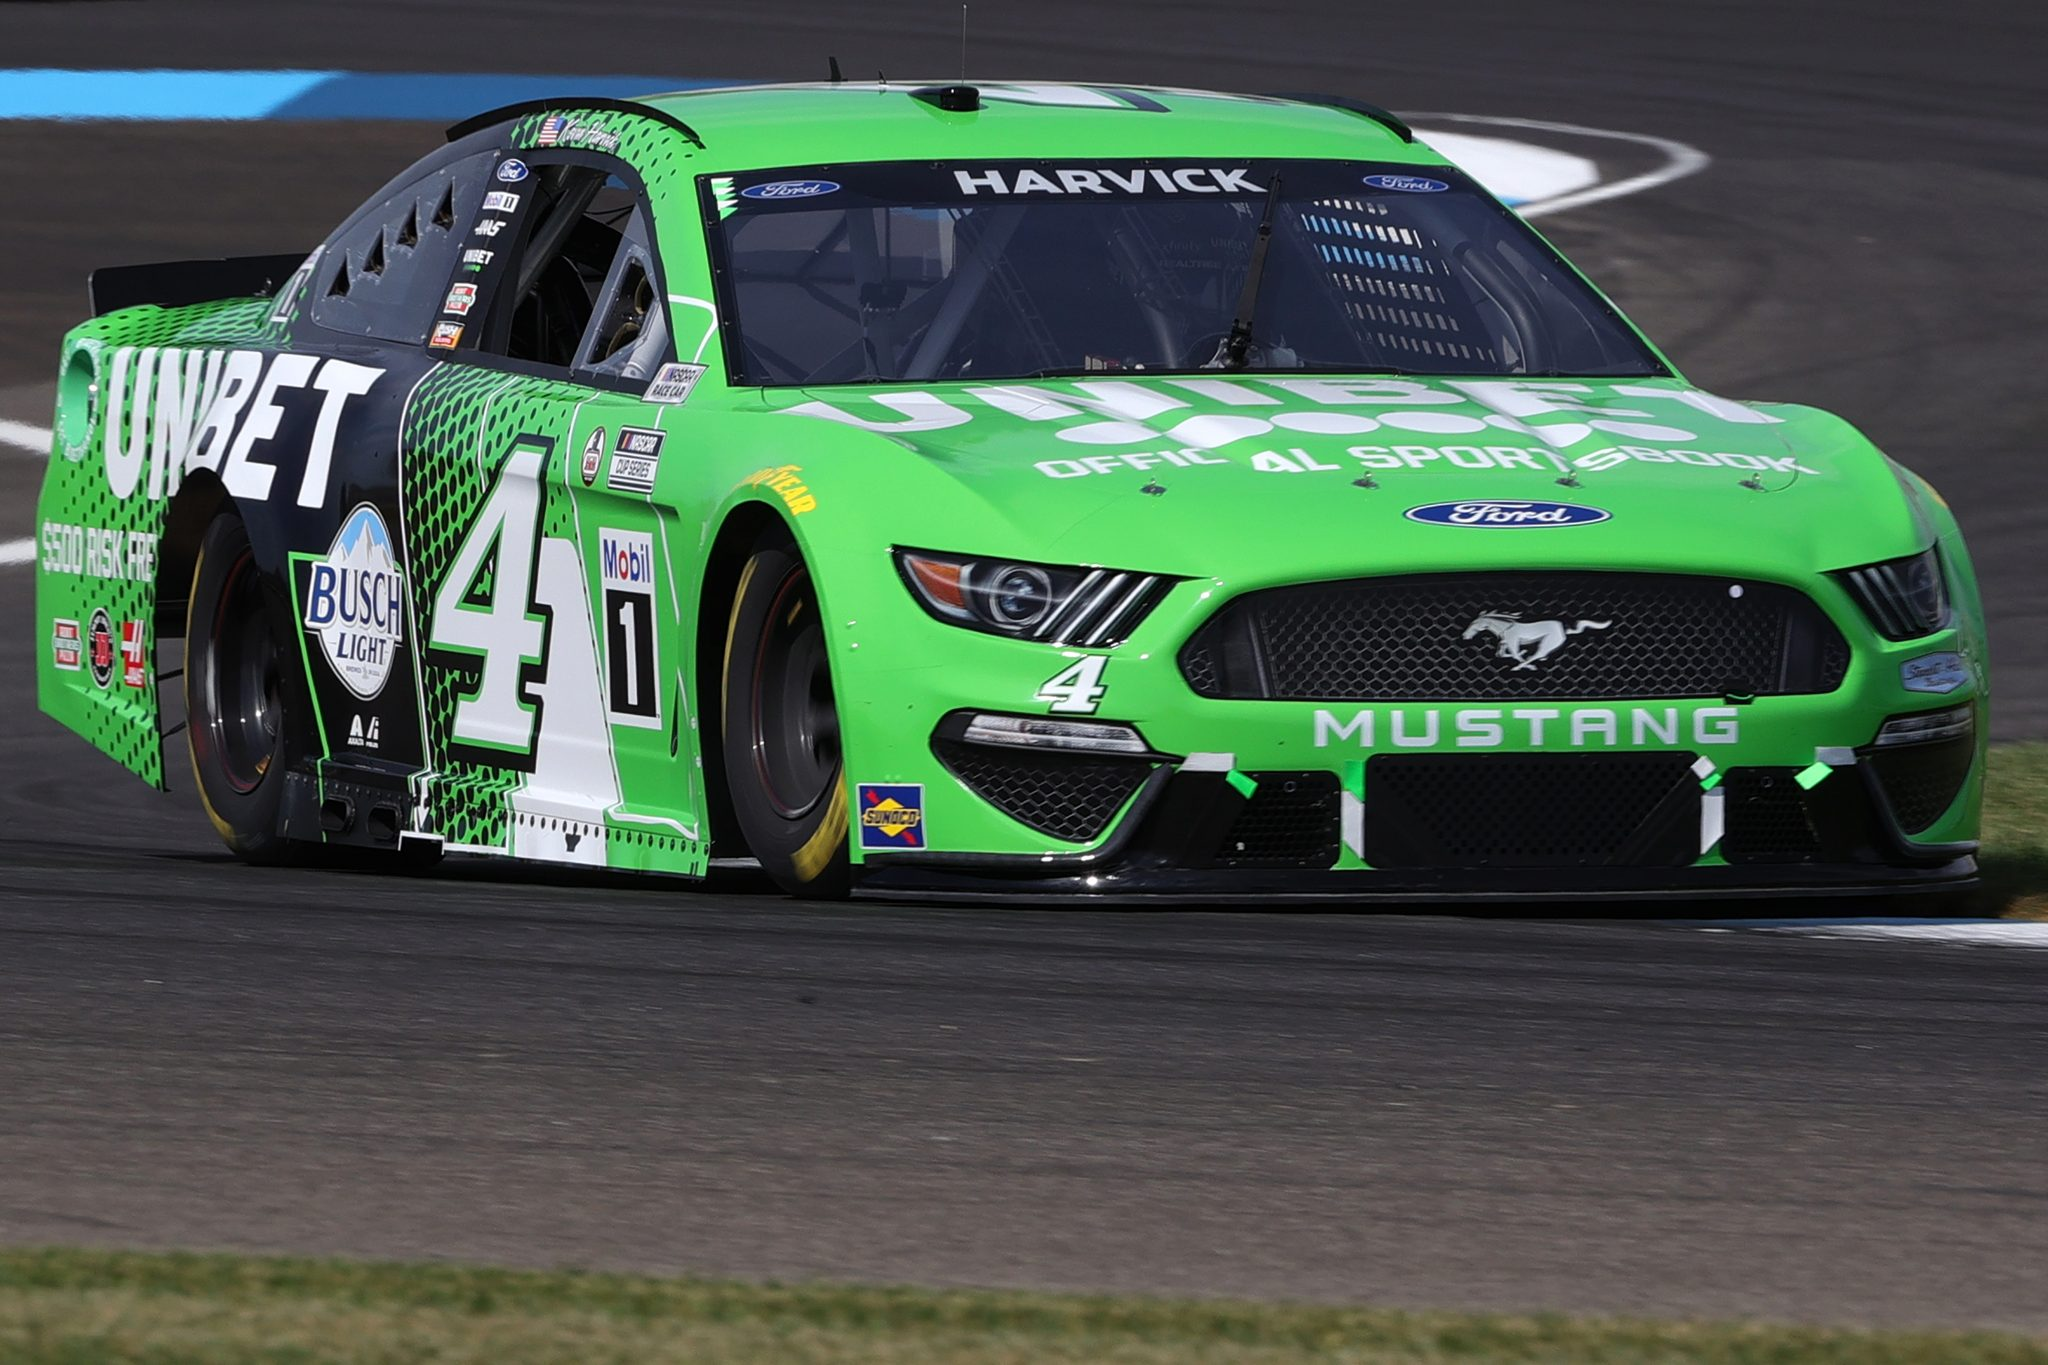 INDIANAPOLIS, INDIANA - AUGUST 14: Kevin Harvick, driver of the #4 Unibet Ford, drives during practice for the NASCAR Cup Series Verizon 200 at the Brickyard at Indianapolis Motor Speedway on August 14, 2021 in Indianapolis, Indiana. (Photo by Stacy Revere/Getty Images)   Getty Images